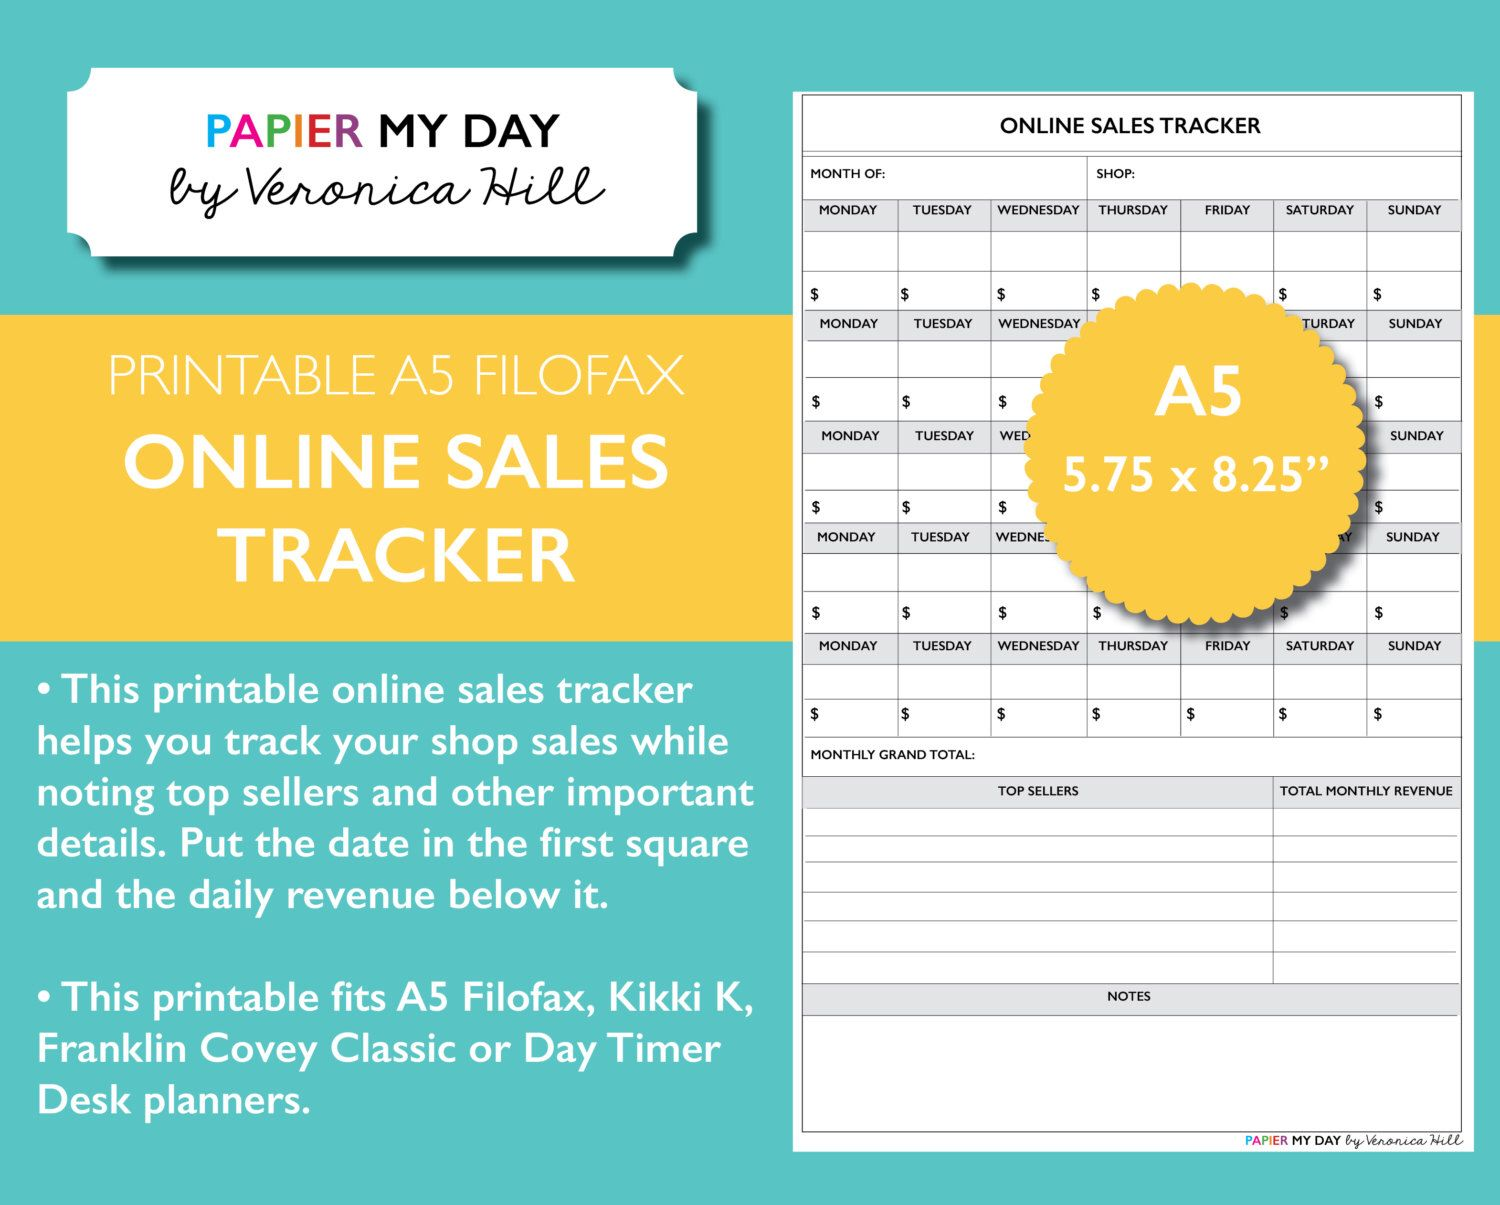 a5 filofax online sales tracker printable monthly etsy sales tracker fits kikki k largepersonal and filofax a5 planners